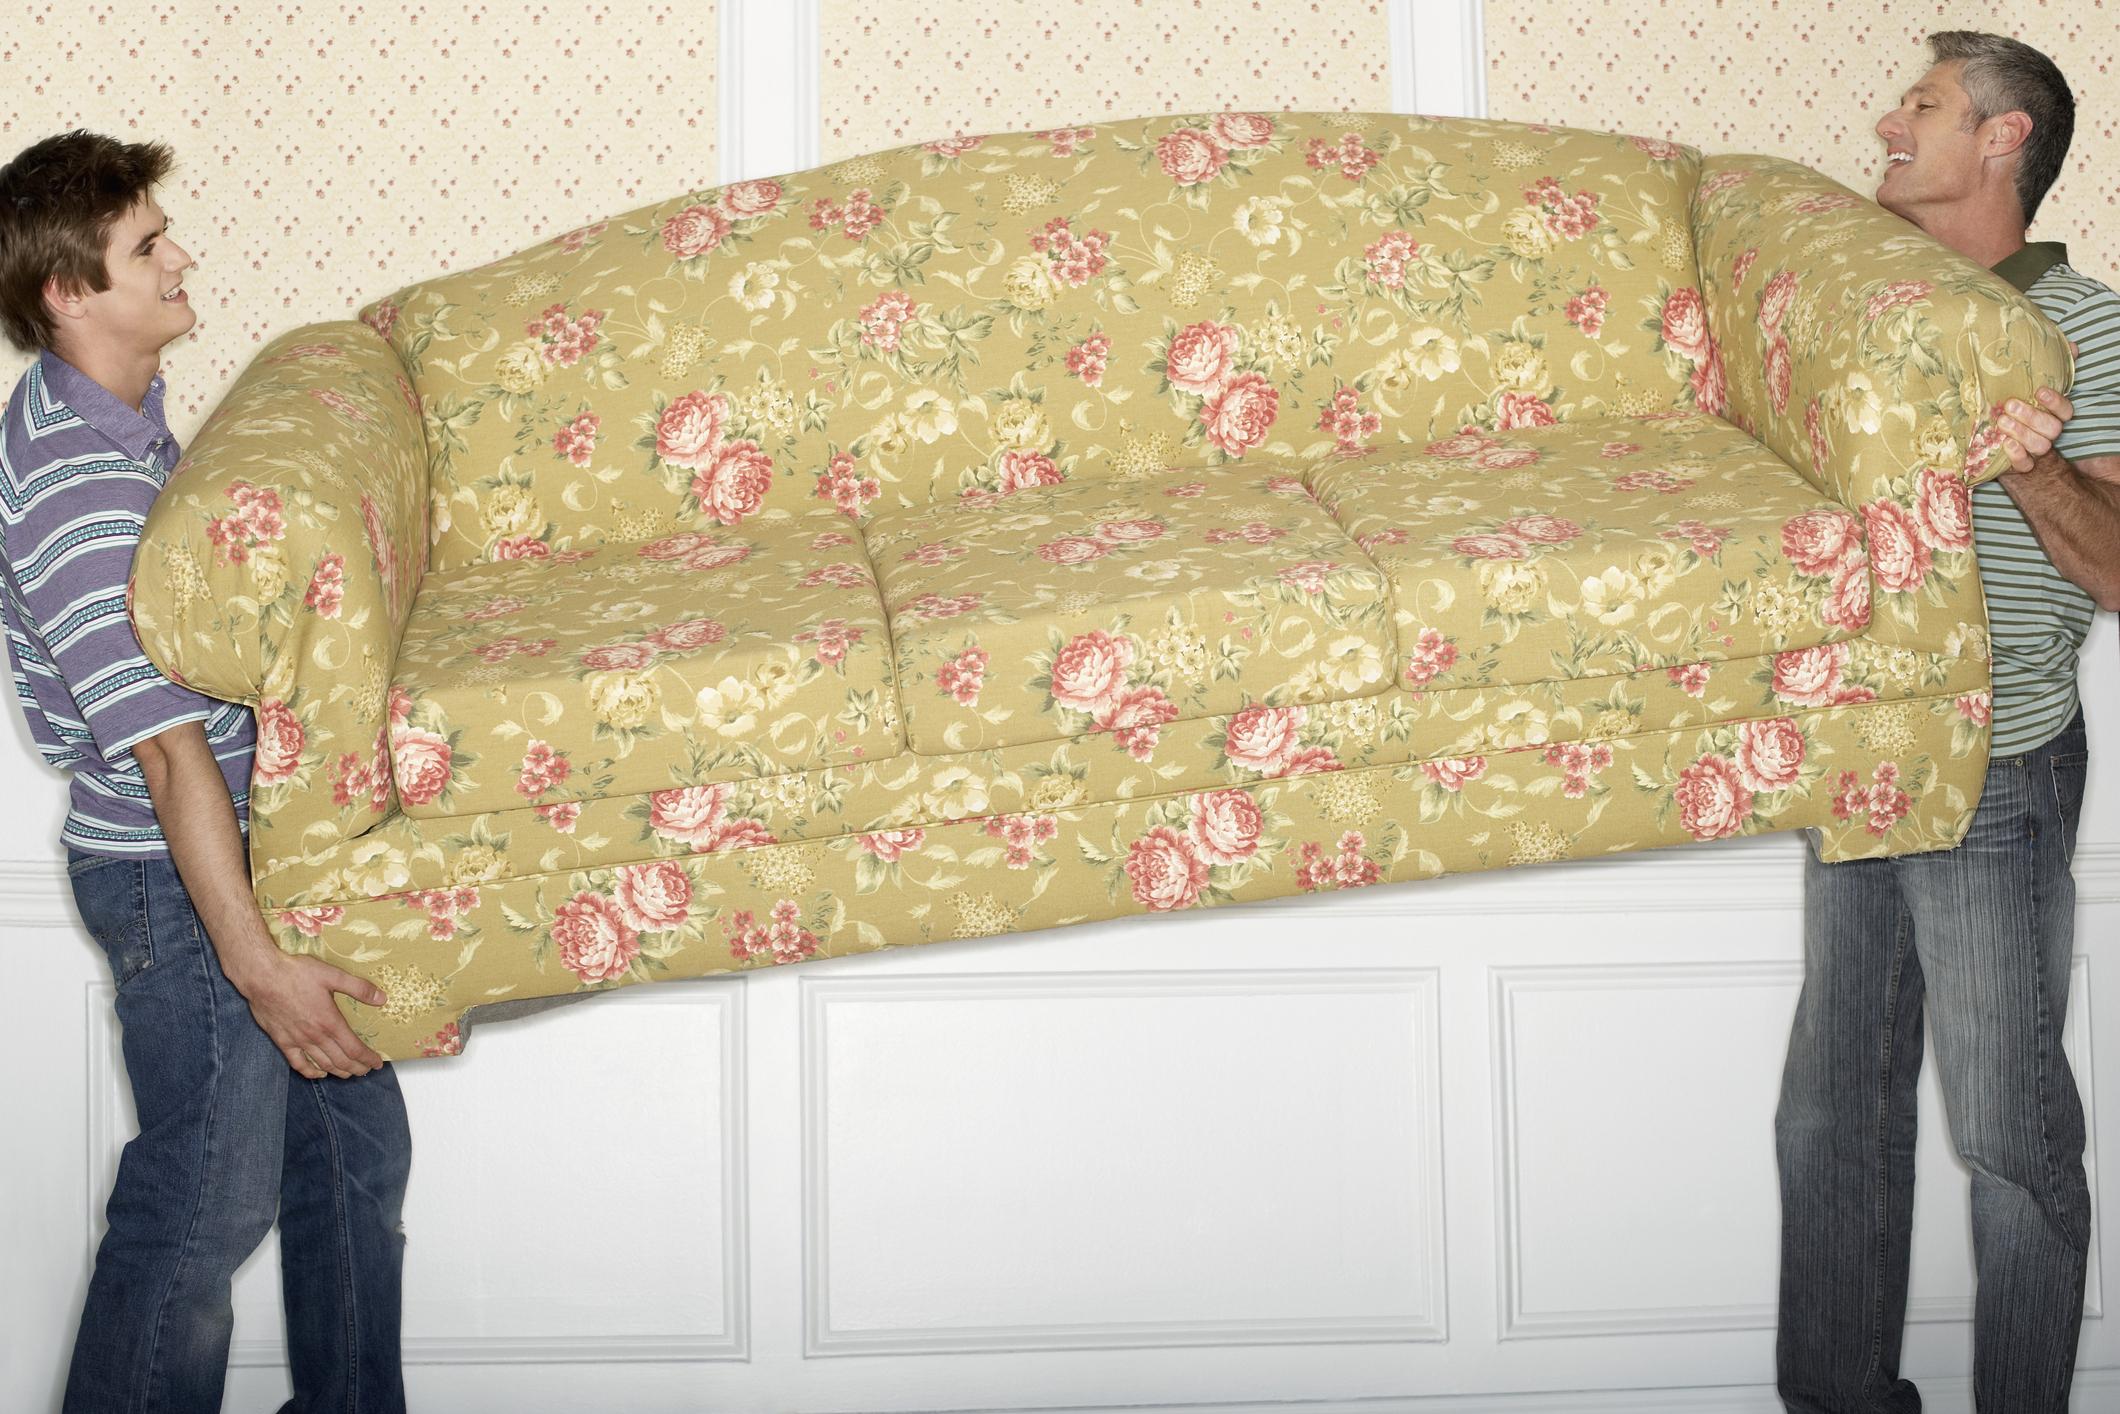 Reasons to Donate Used Furniture  LoveToKnow